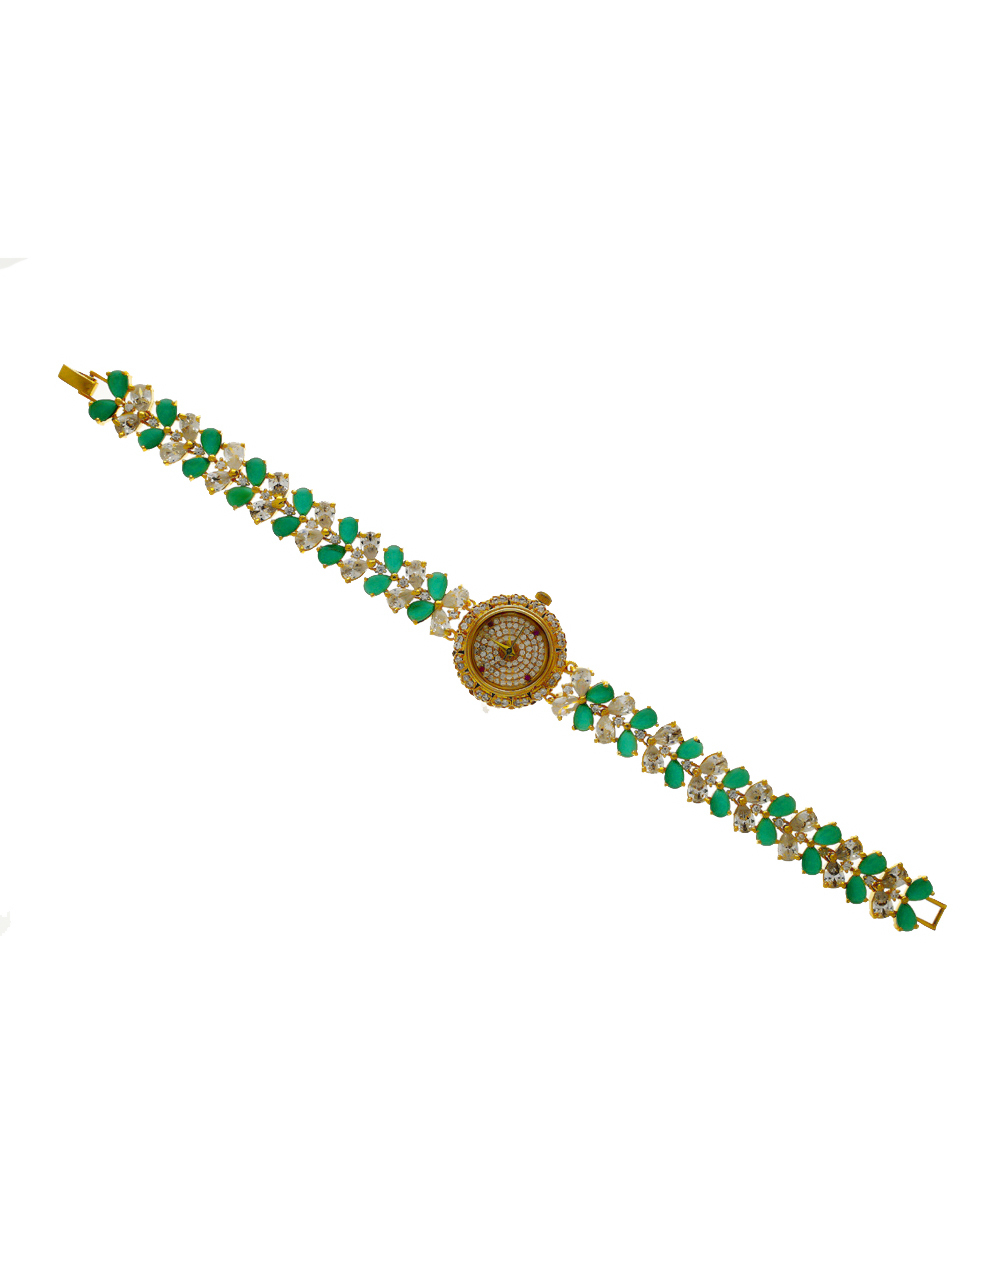 Green Colour Gold Finish Stunning American Diamond Watch